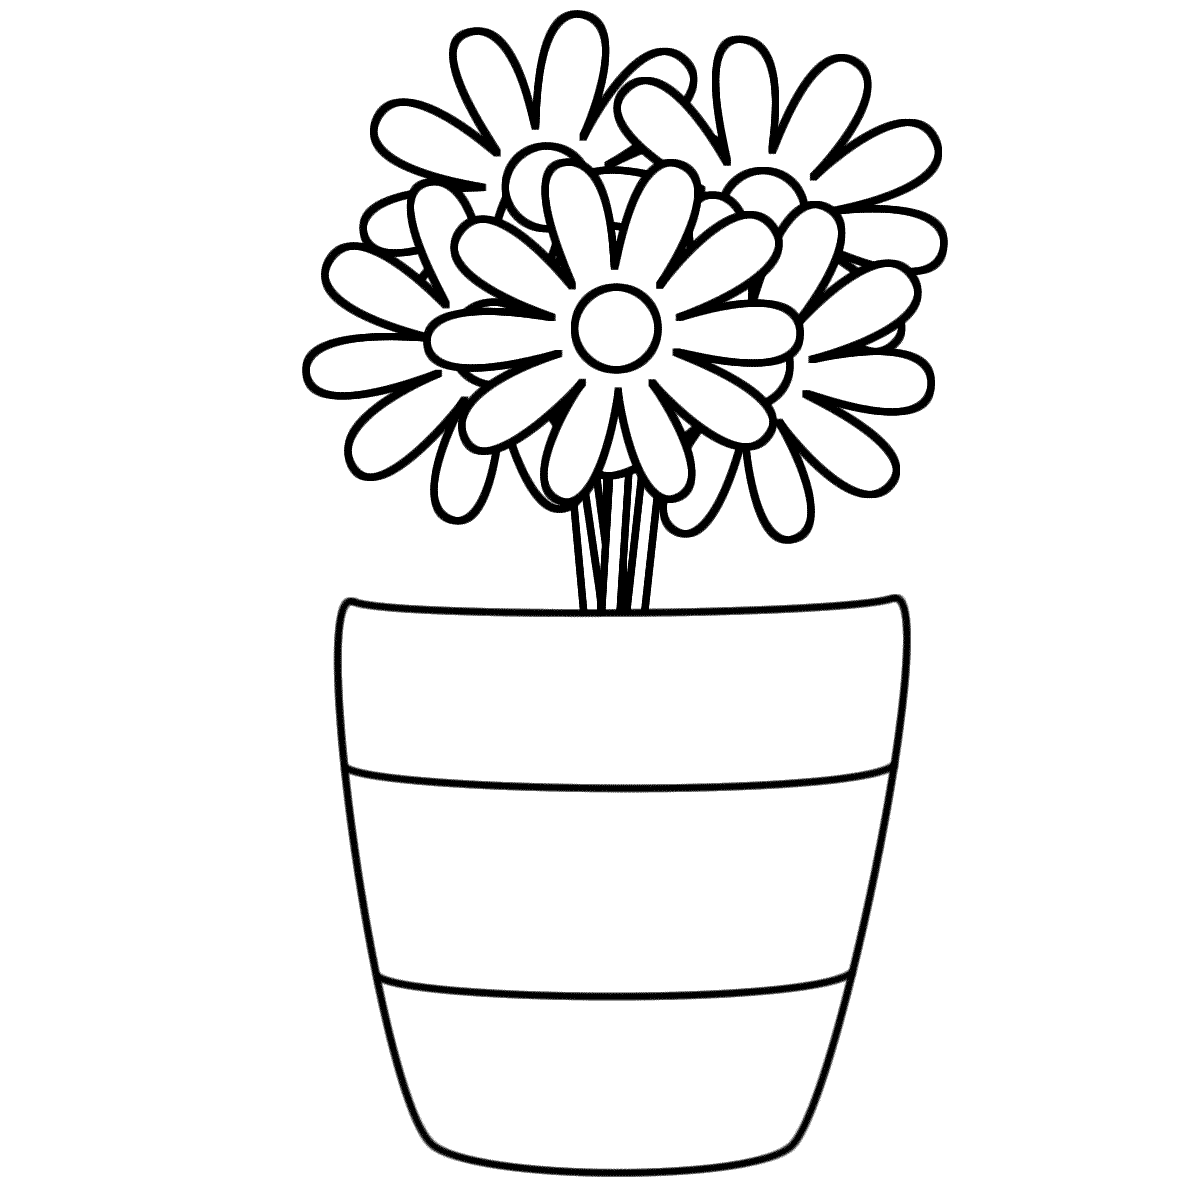 Flowers in a Vase with Stripes - Coloring Page (Plants)